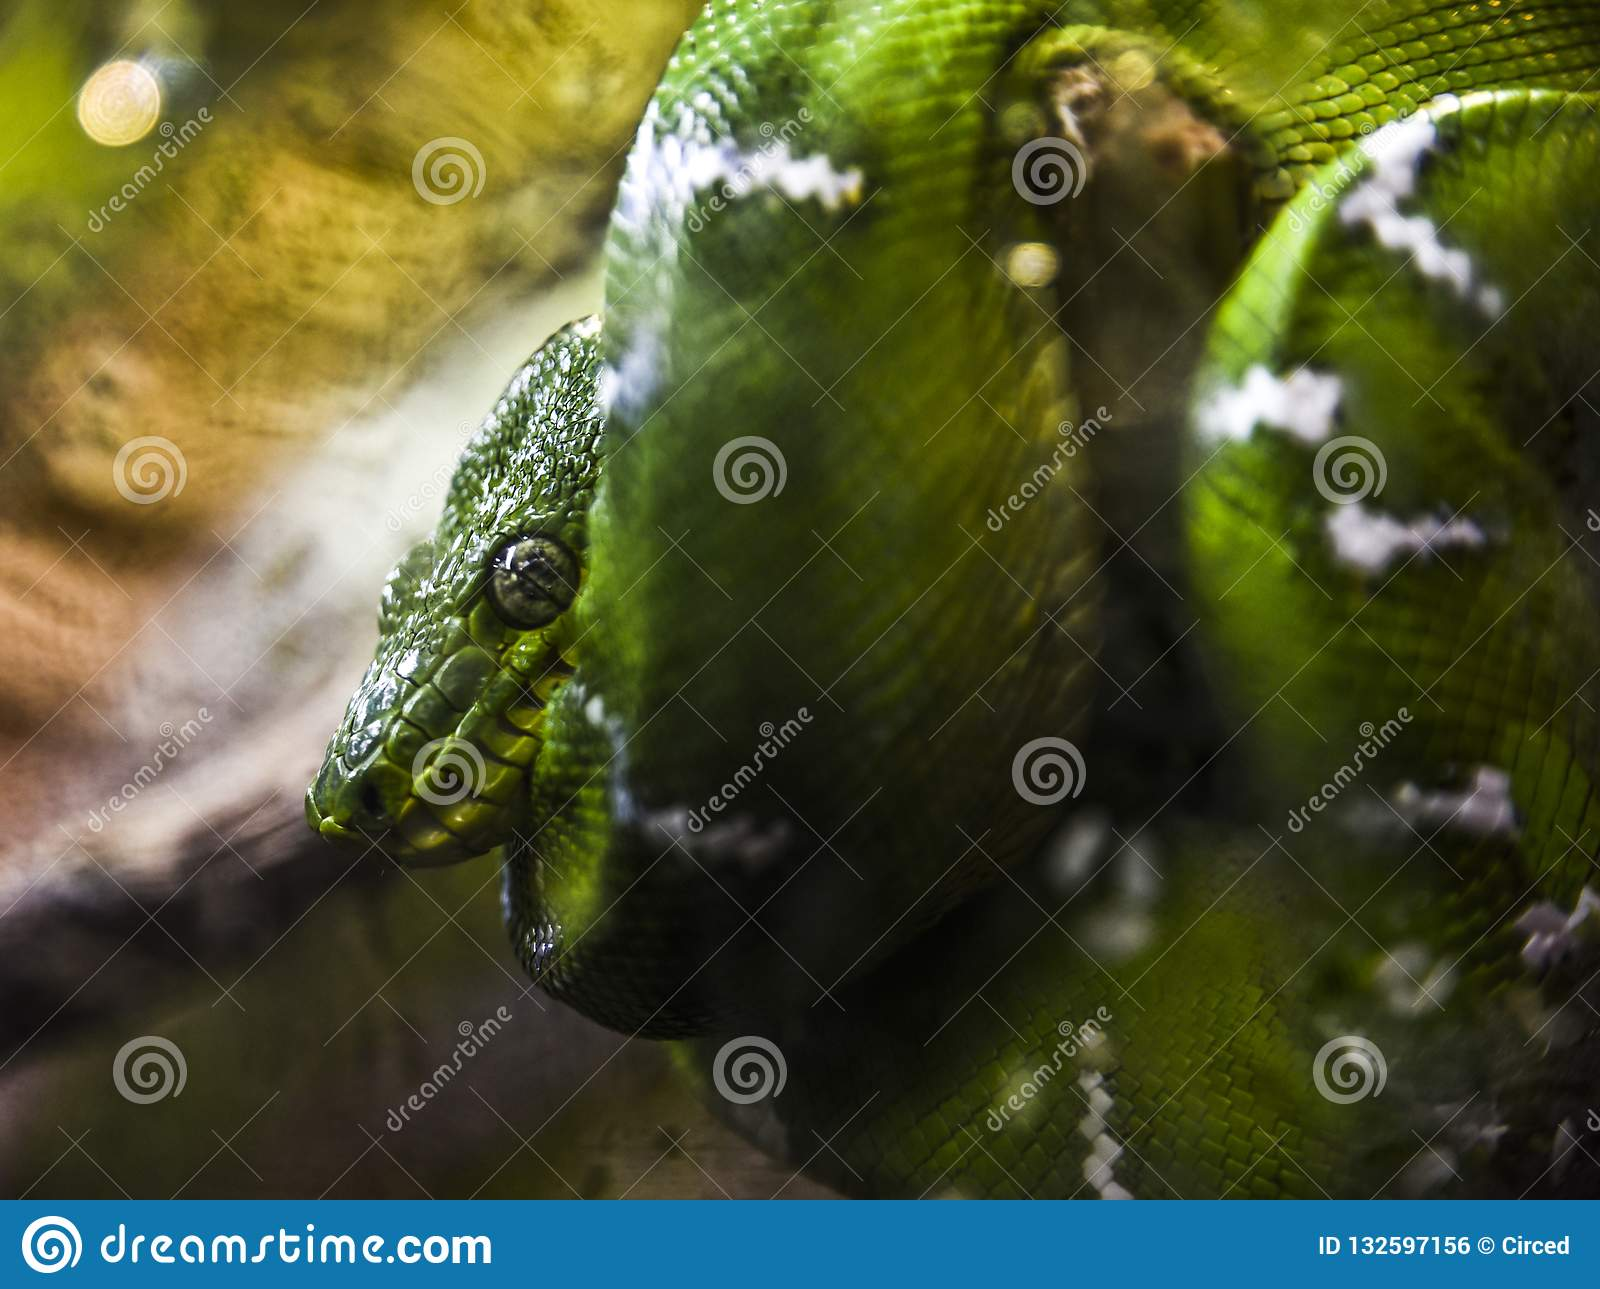 Green Snake sleeps while curled around a branch